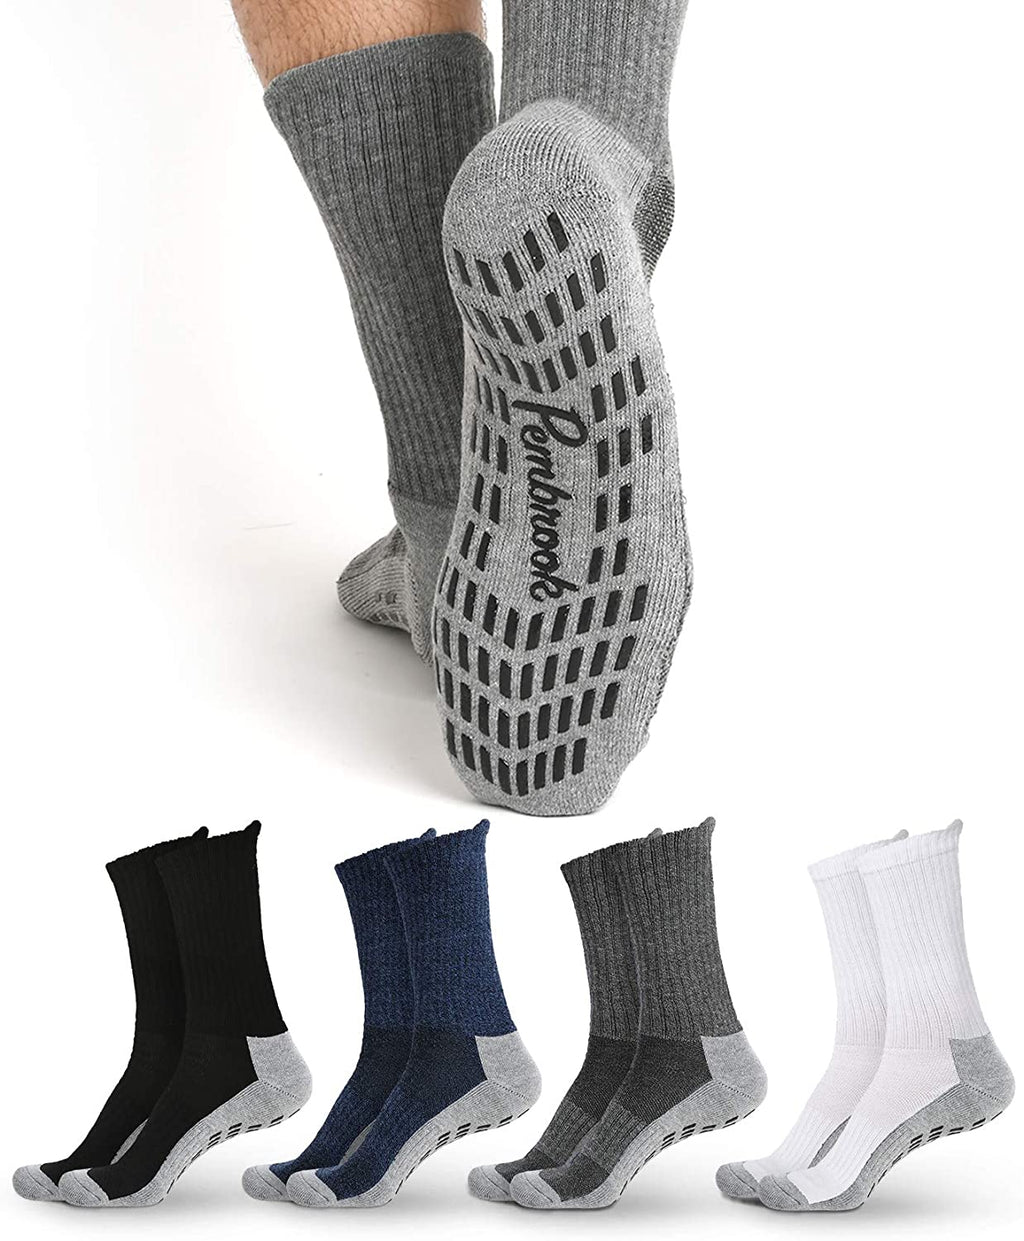 Non Skid Crew Socks - (4 Pack)